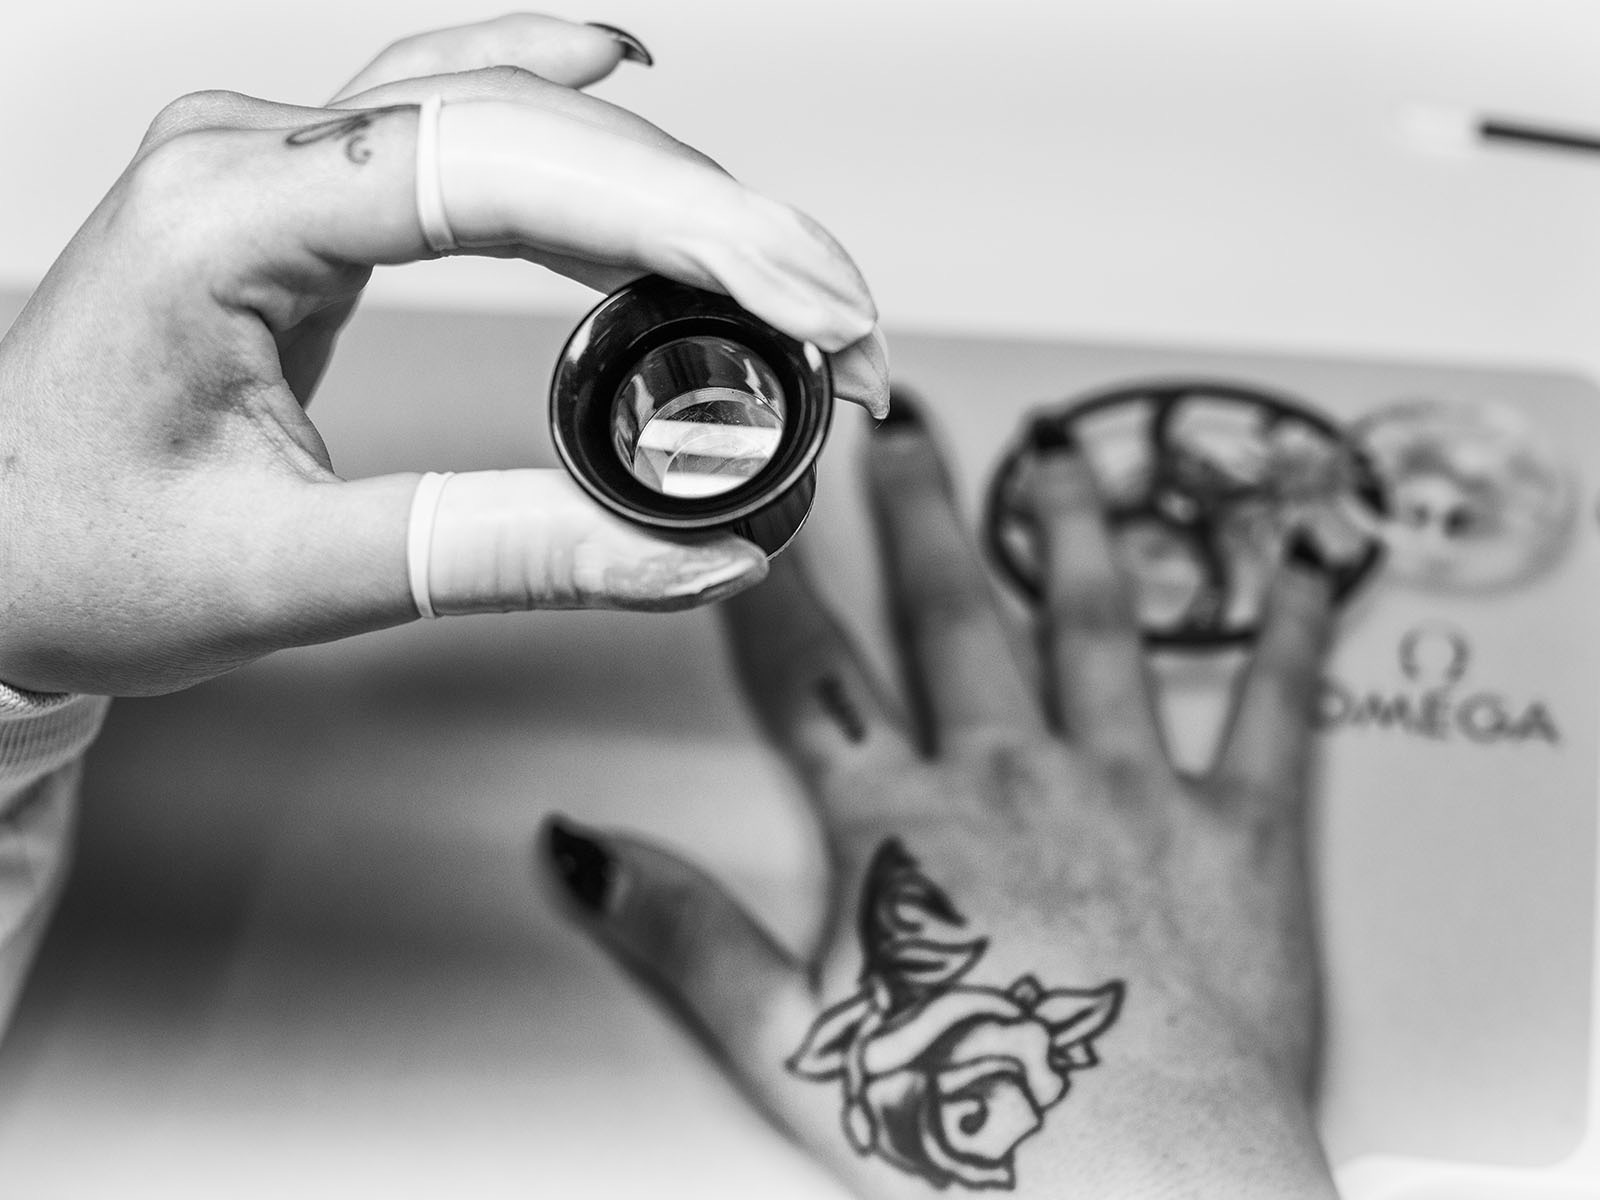 Hands with gloves holding a magnifying glass